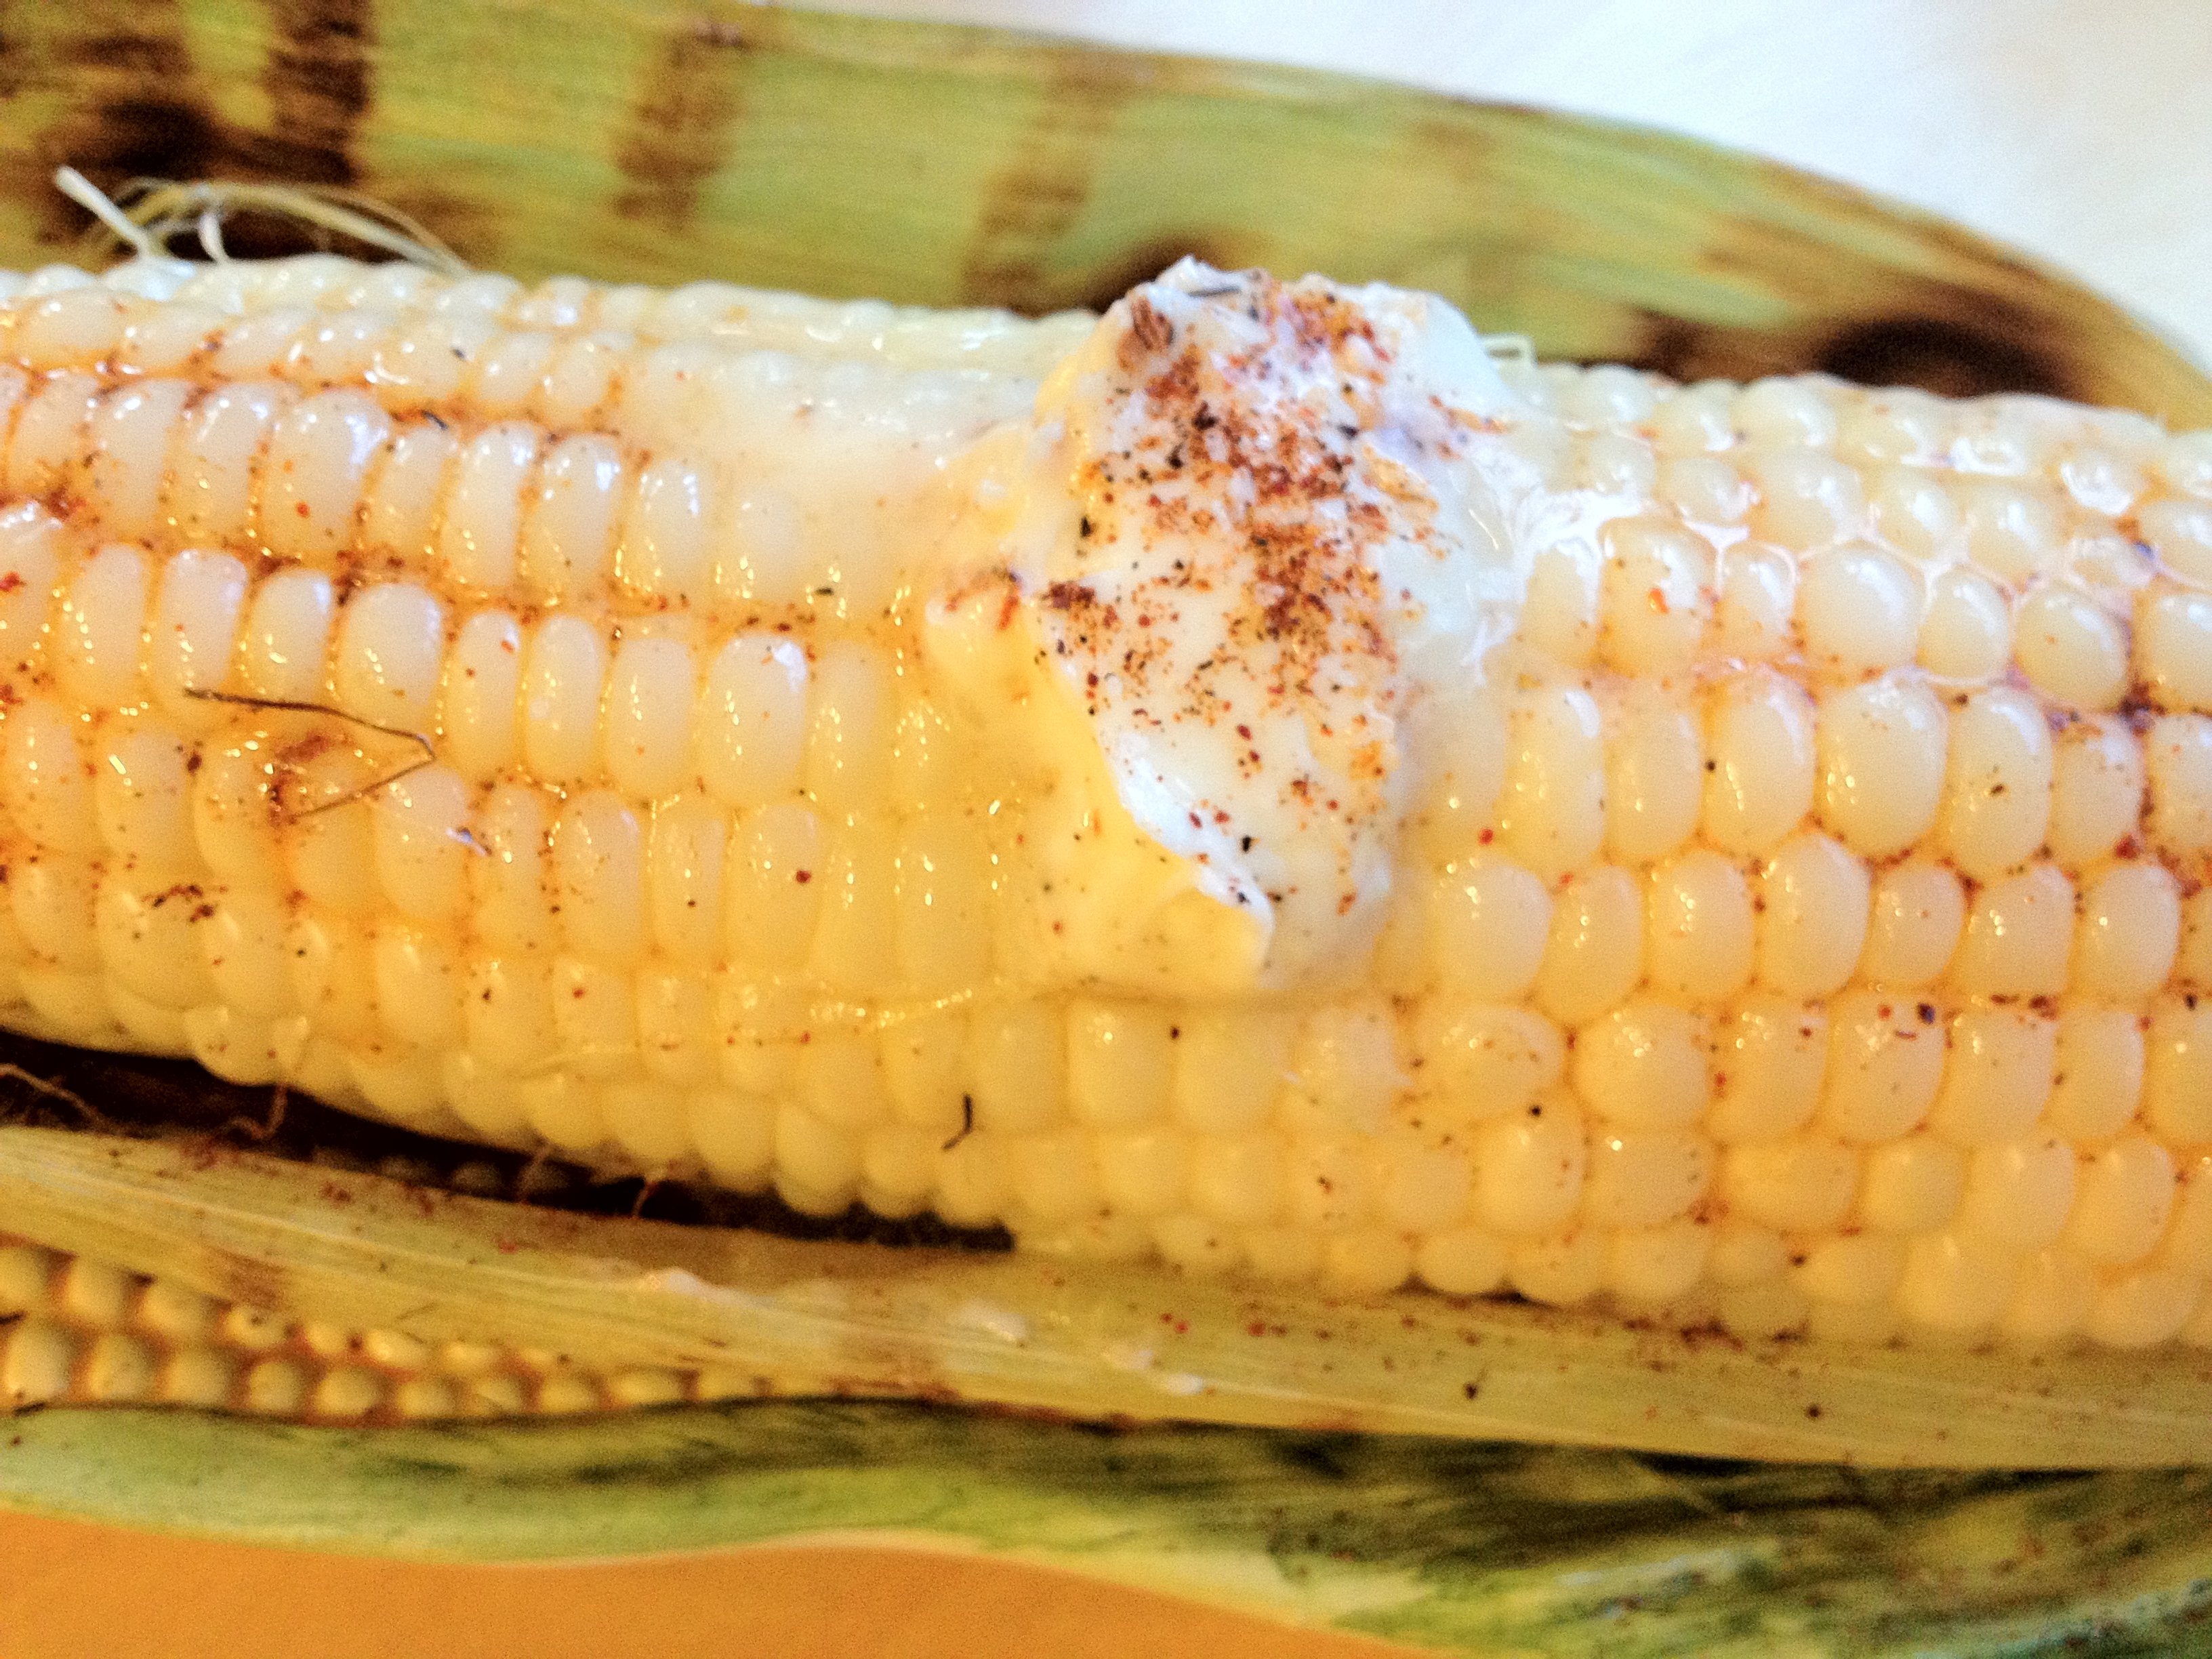 cornbarphoto Gridiron Grub: Get The Party Poppin With Corn